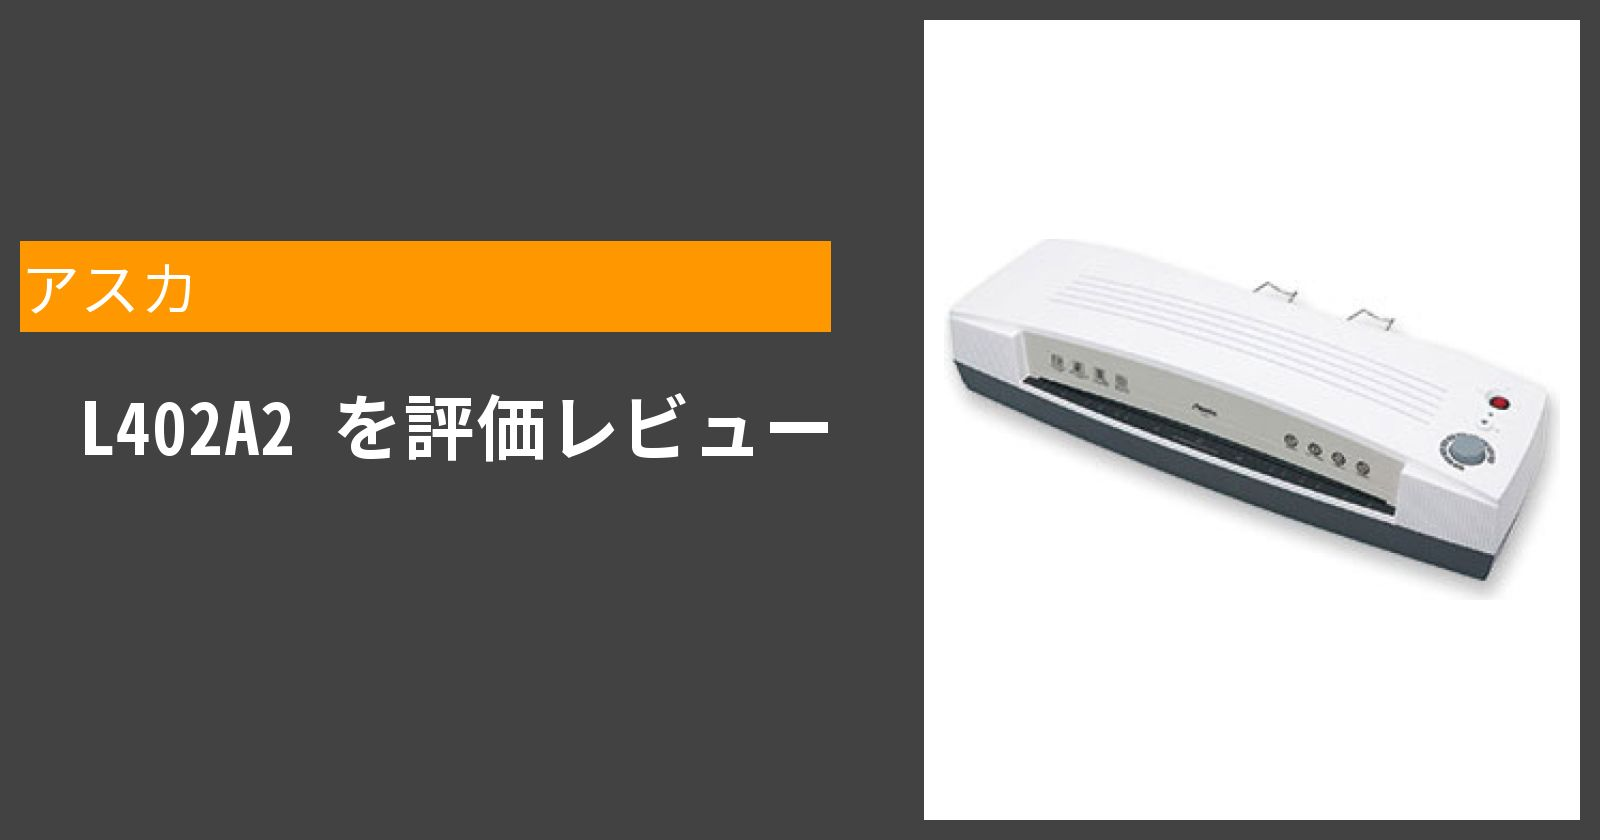 L402A2を徹底評価